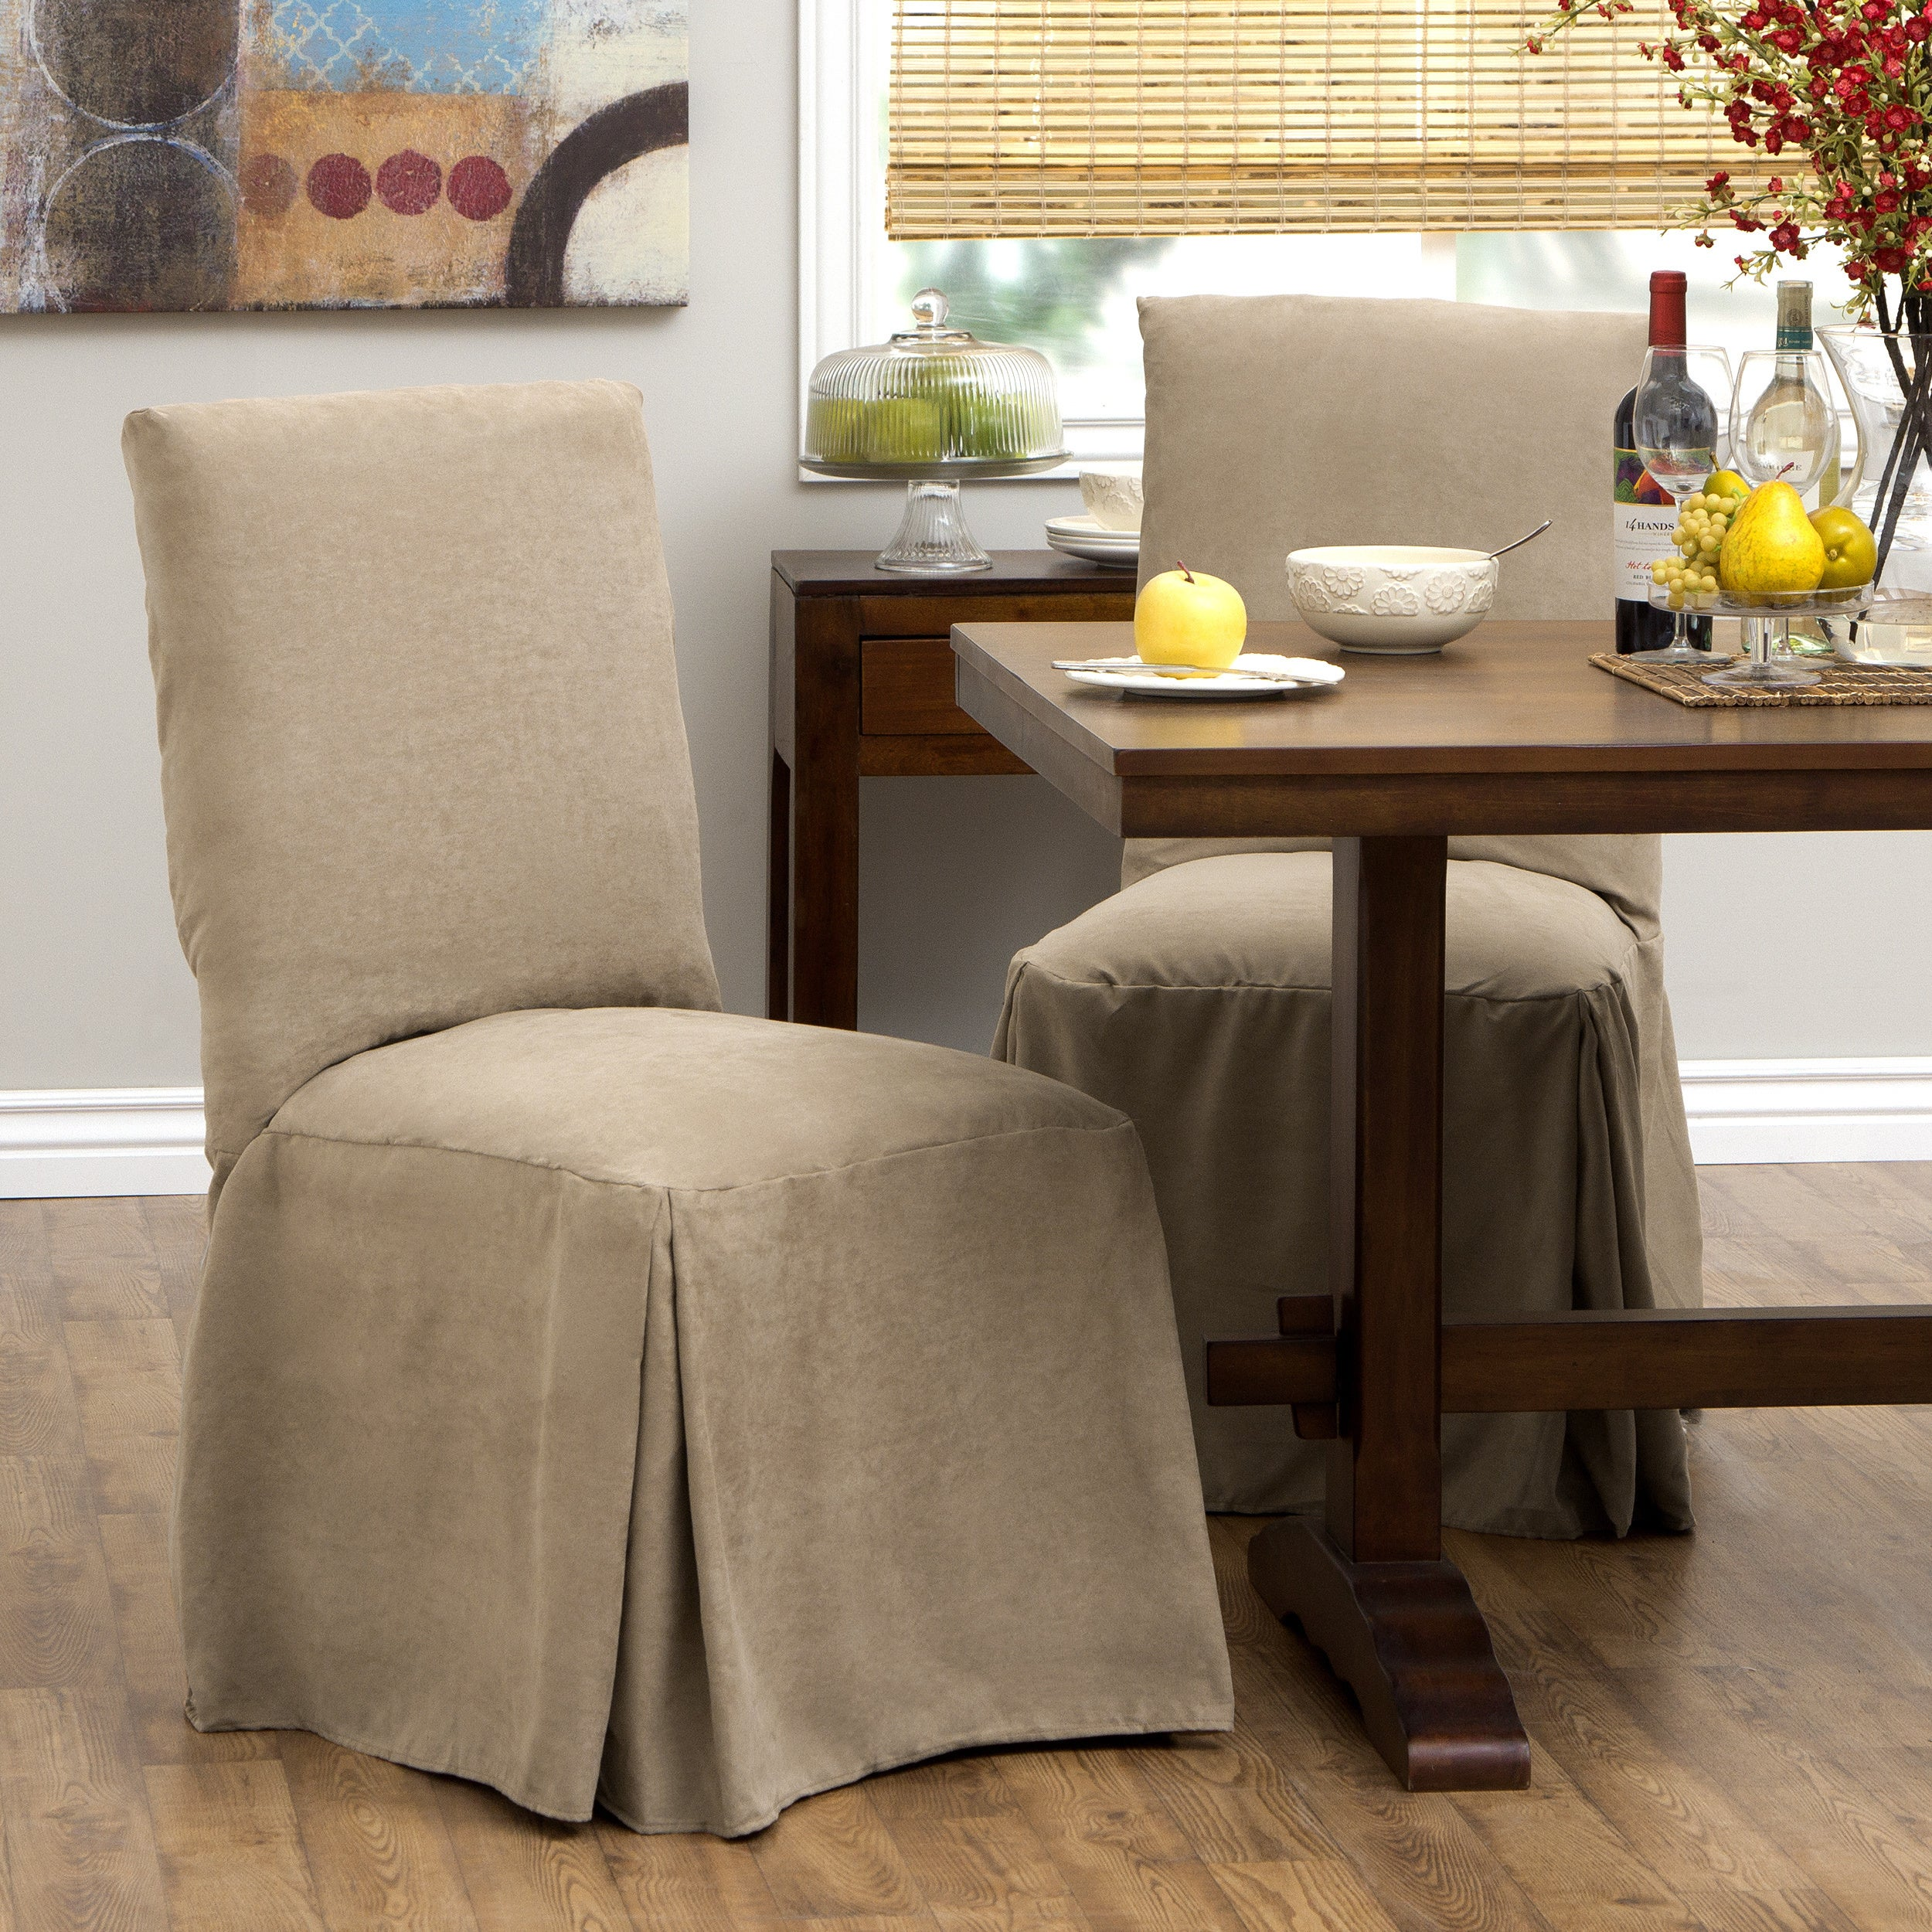 Tailor Fit Relaxed Fit Smooth Suede Tall Dining Chair Sli...